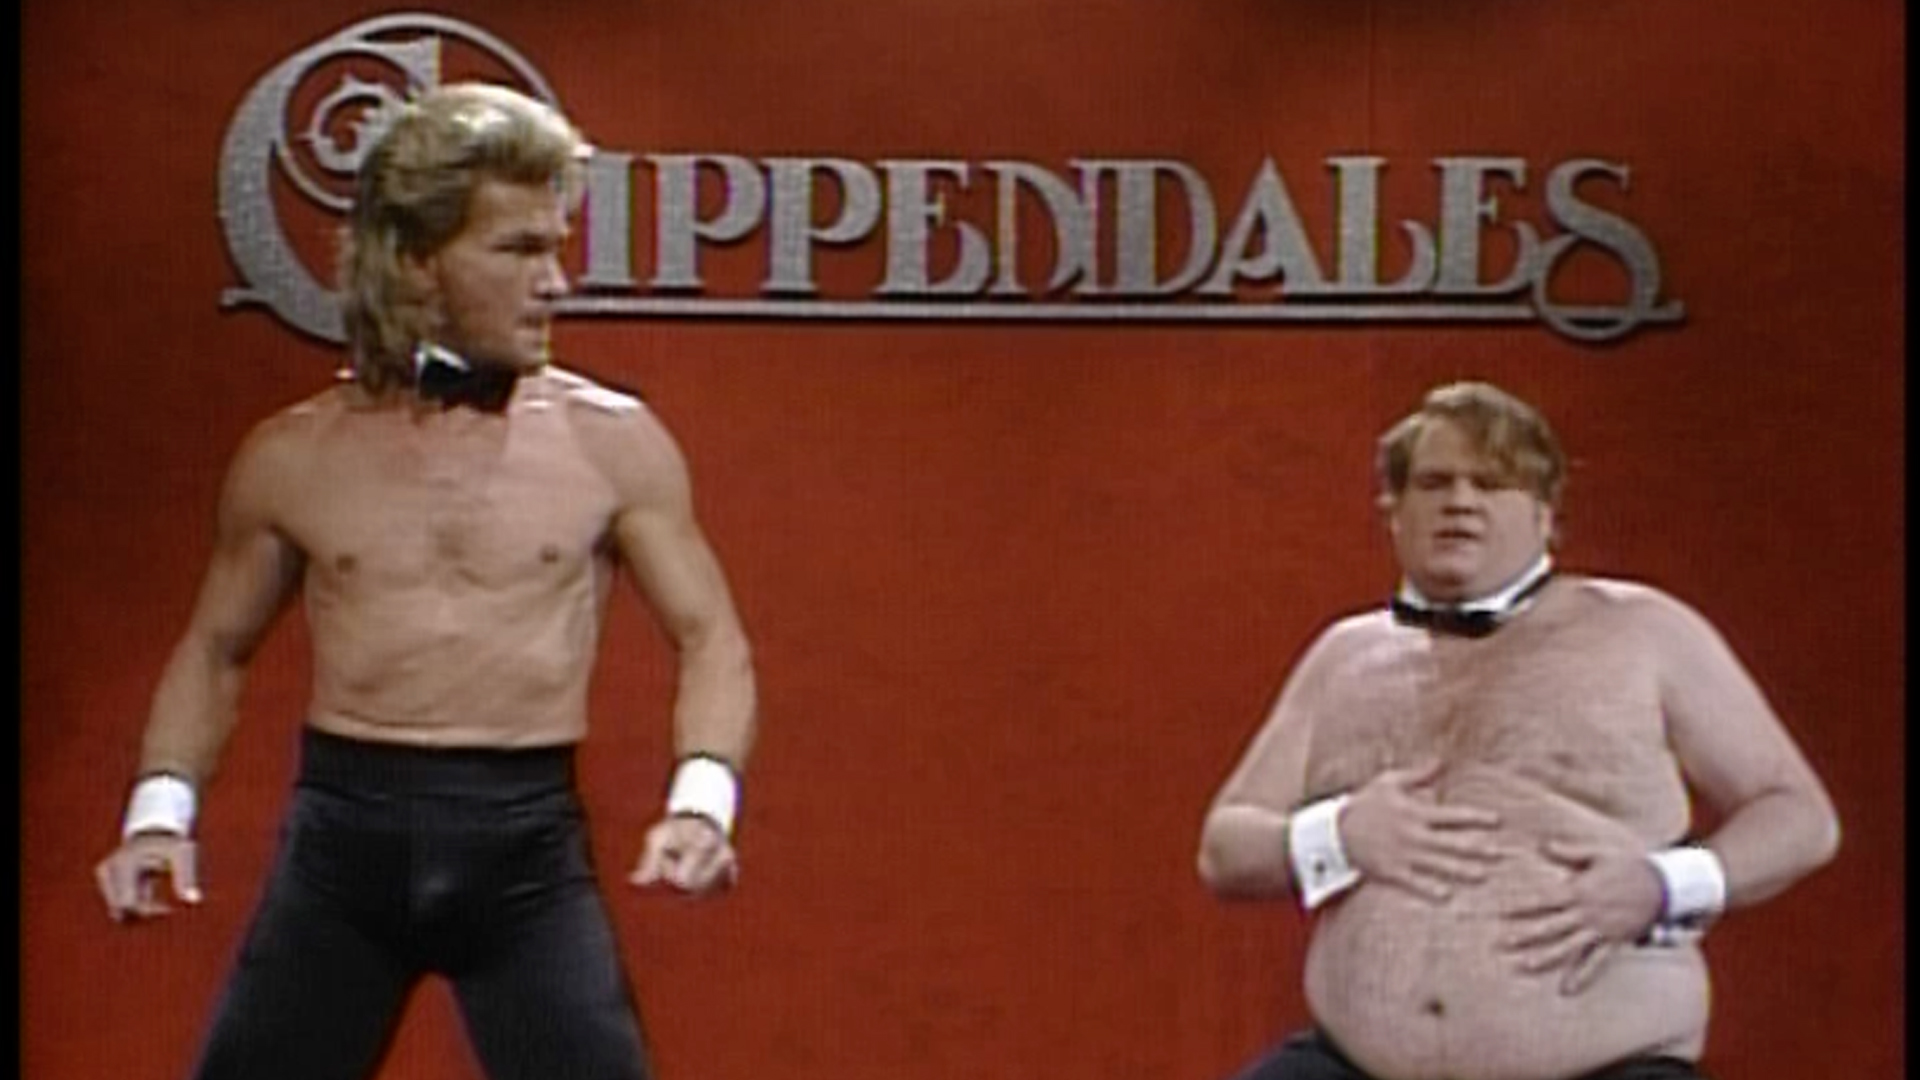 Patrick Swayze and Chris Farley